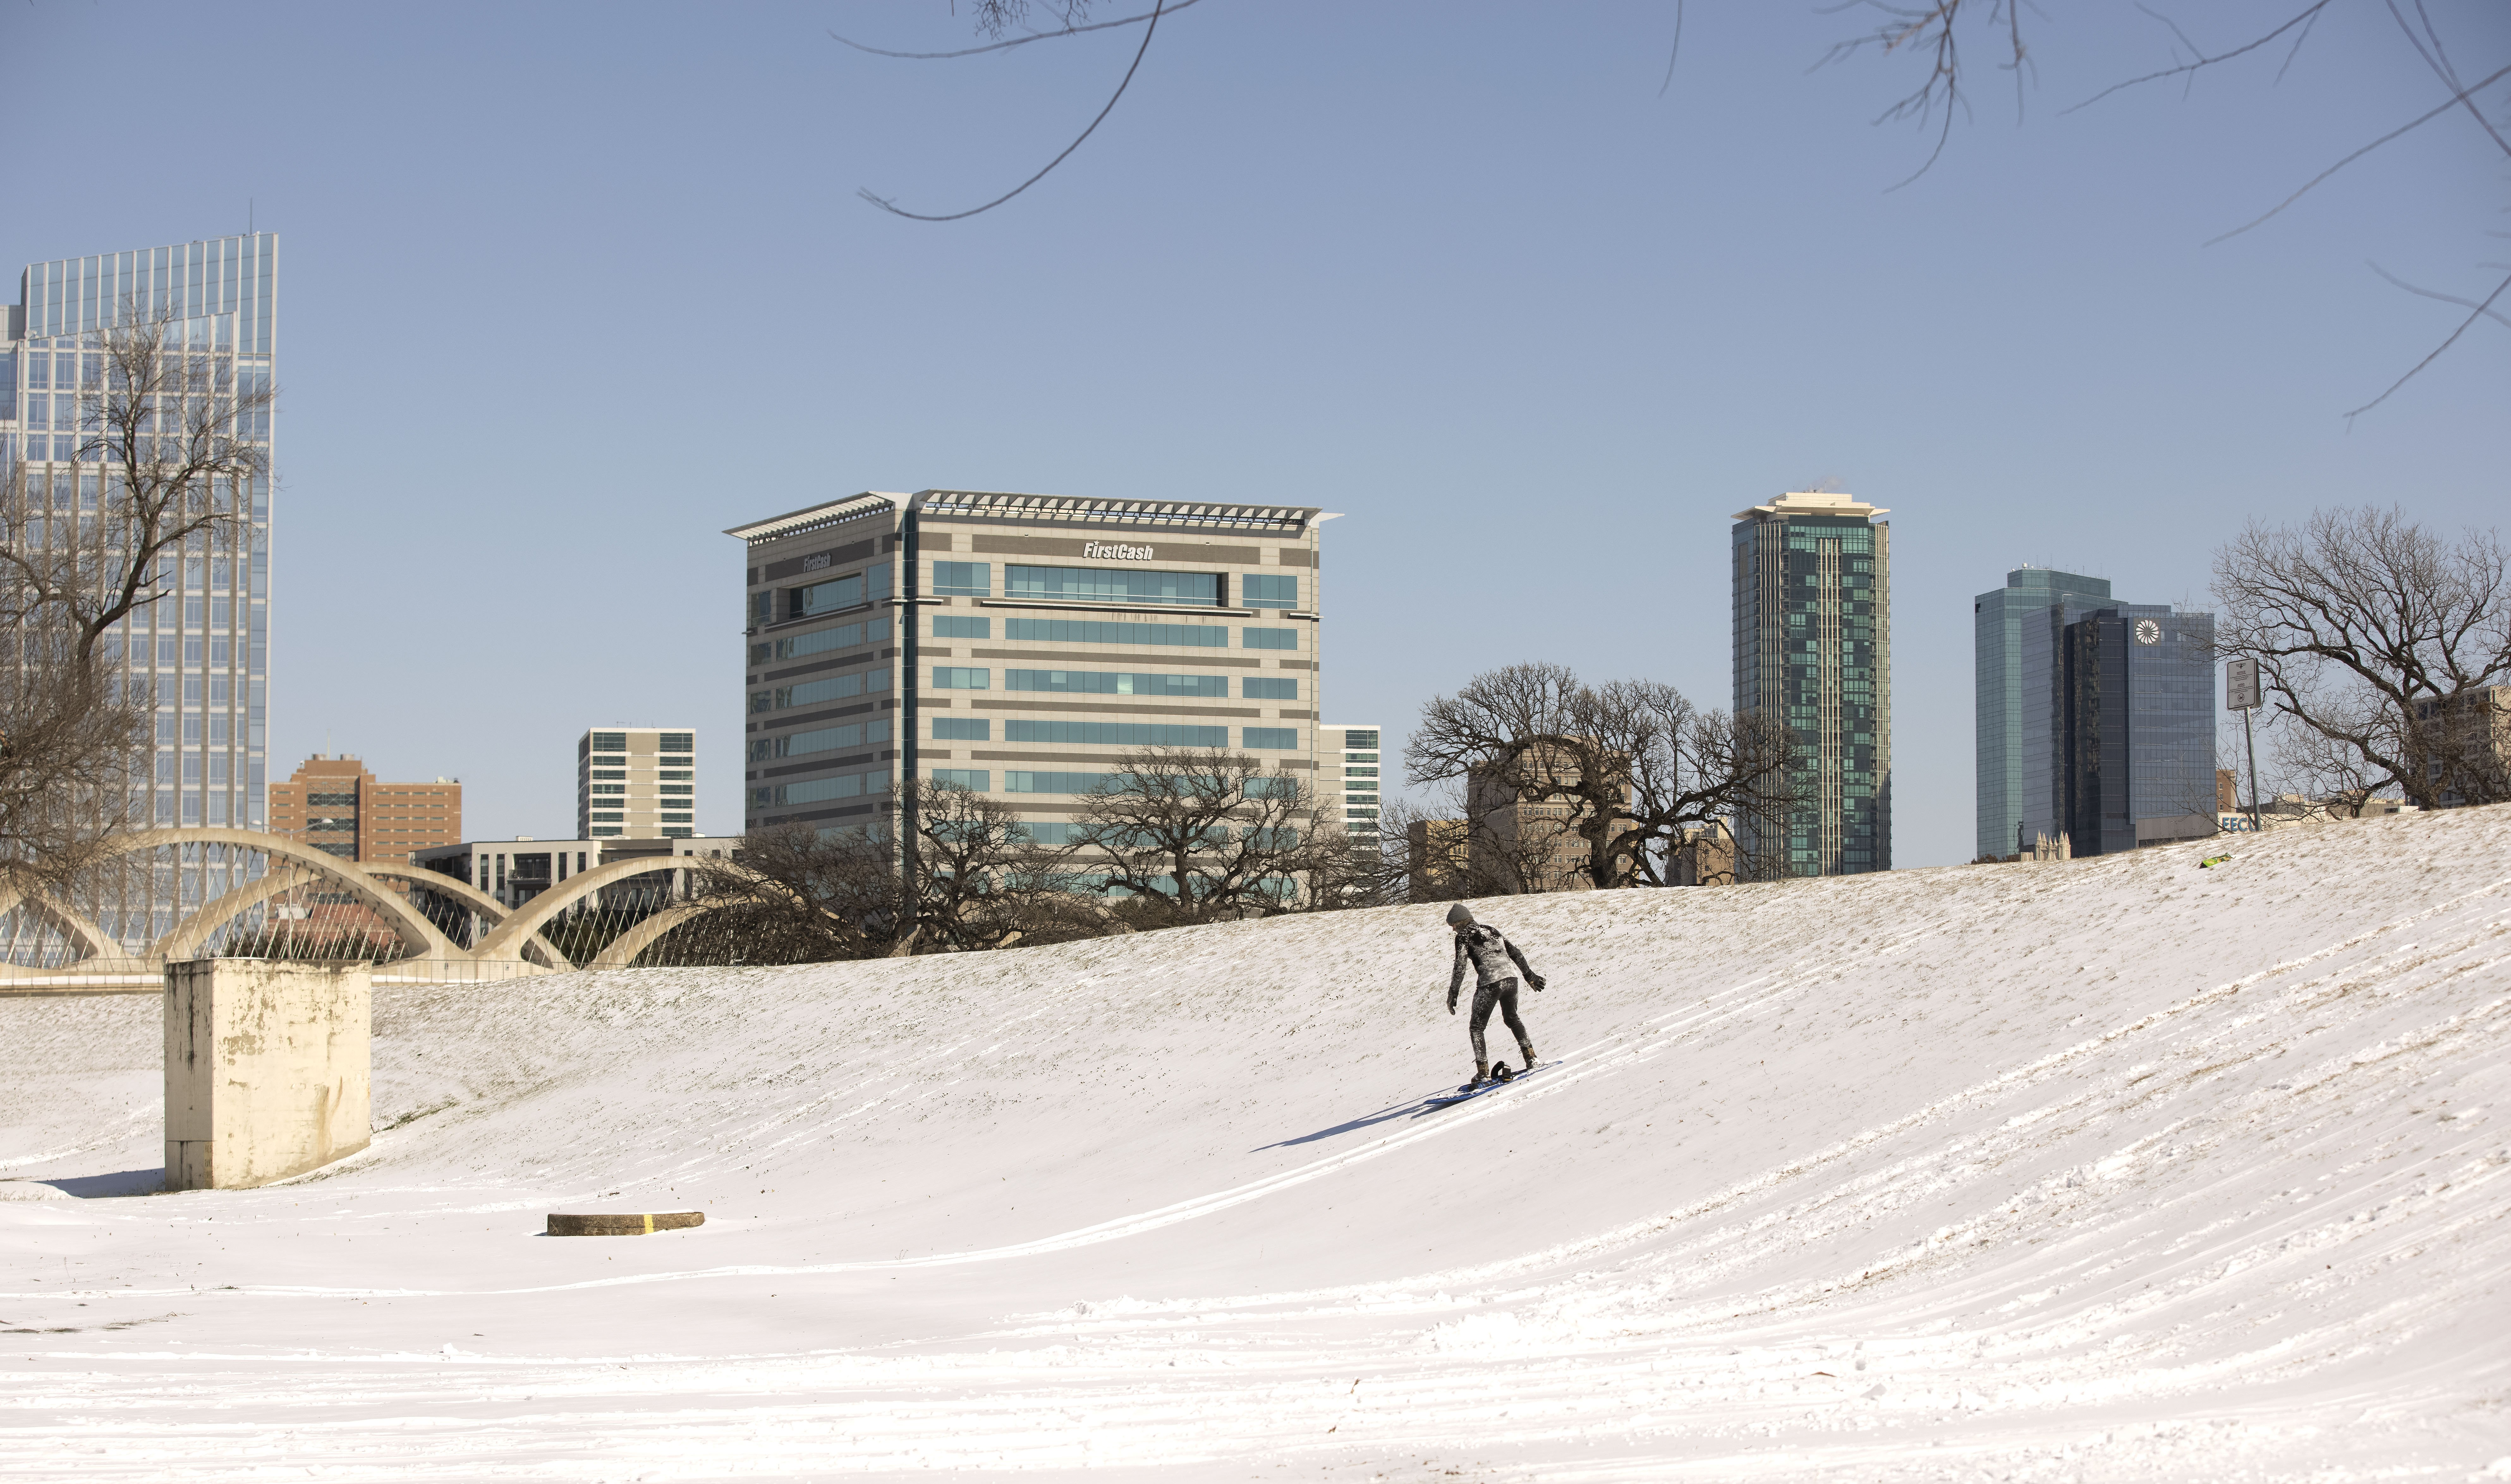 Eric Czarnecki goes sledding after a snow storm Monday in Fort Worth, Texas.